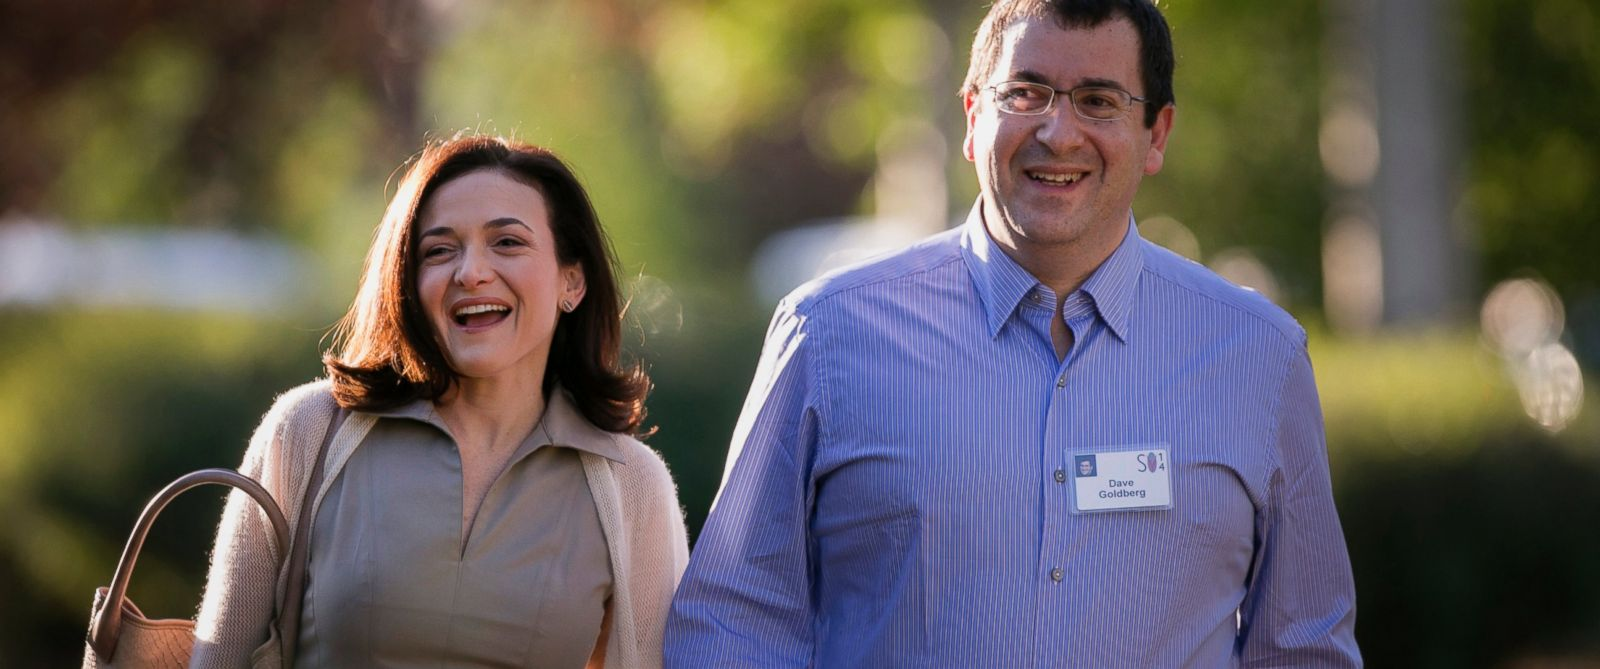 Sheryl K. Sandberg and husband David Goldberg before his death in a Mexican hotel where he was not staying - yet another mysterious death by a person associated with Bill and Hillary Clinton